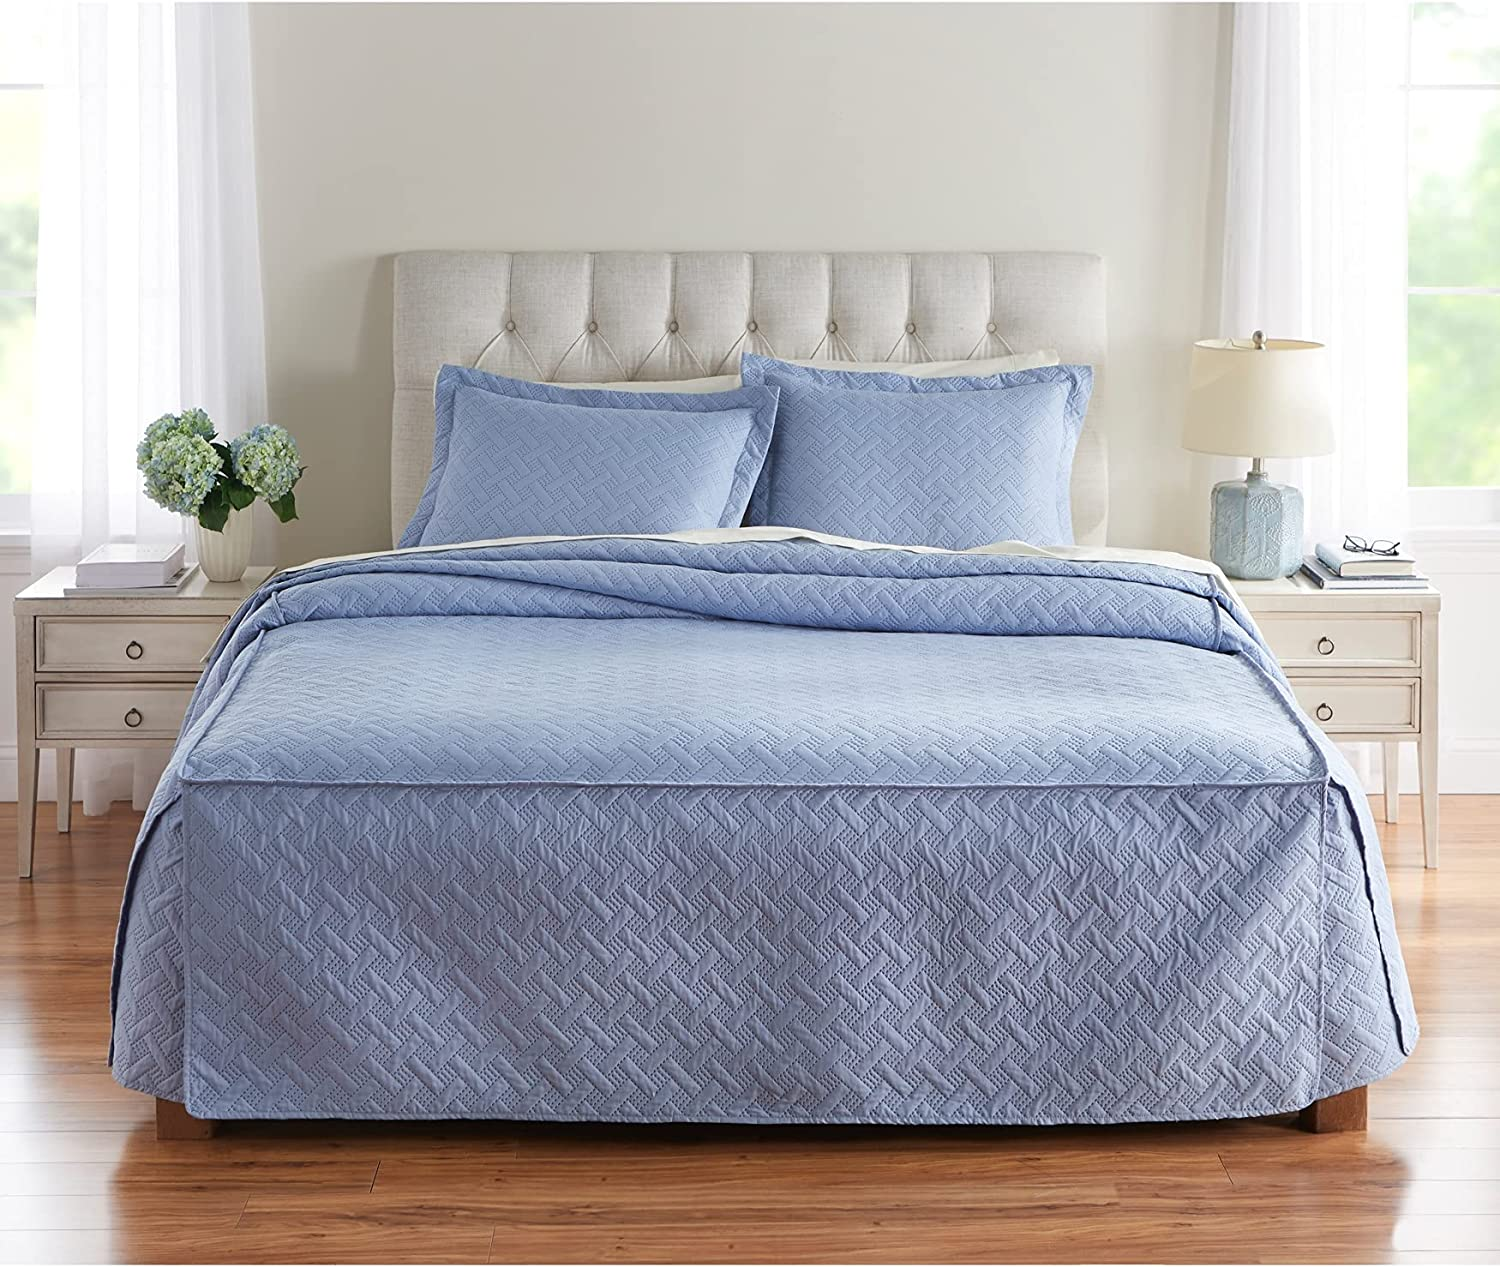 BrylaneHome Pinsonic Fitted Bedspread - Full, Slate Blue